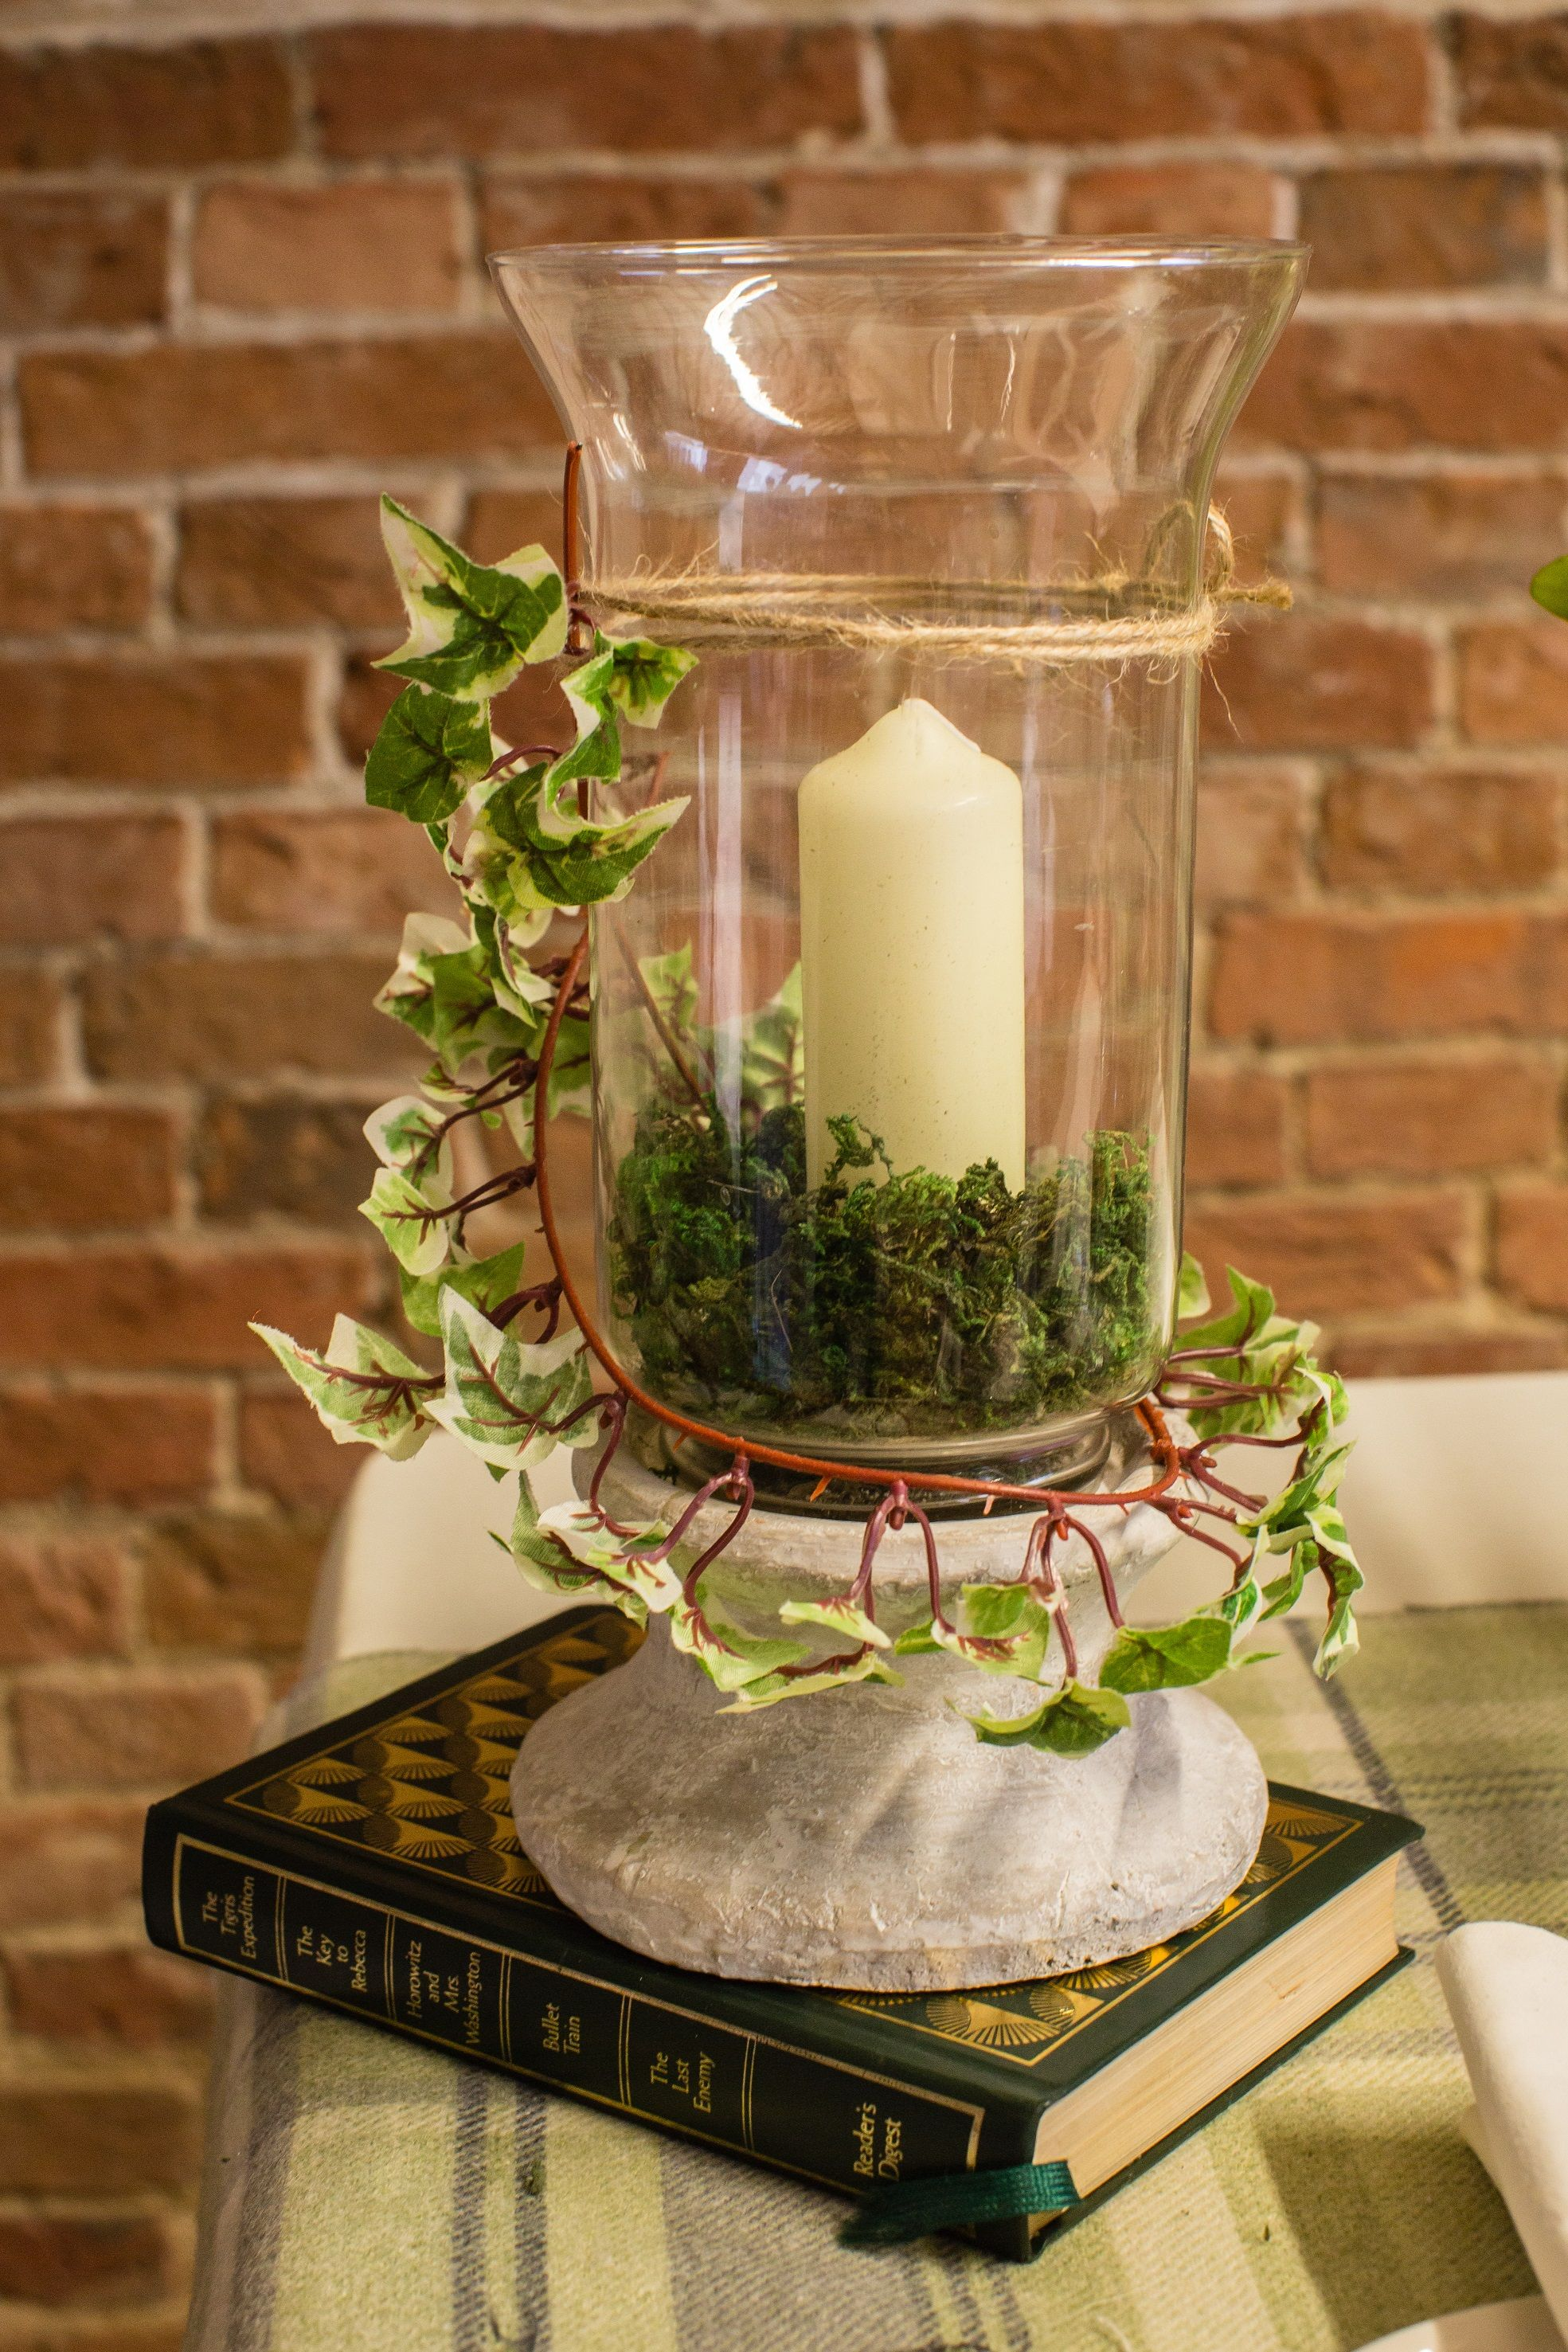 Ivy Wrapped Around A Stone Based Hurricane Vase, Filled With Moss And A  Pillar Candle